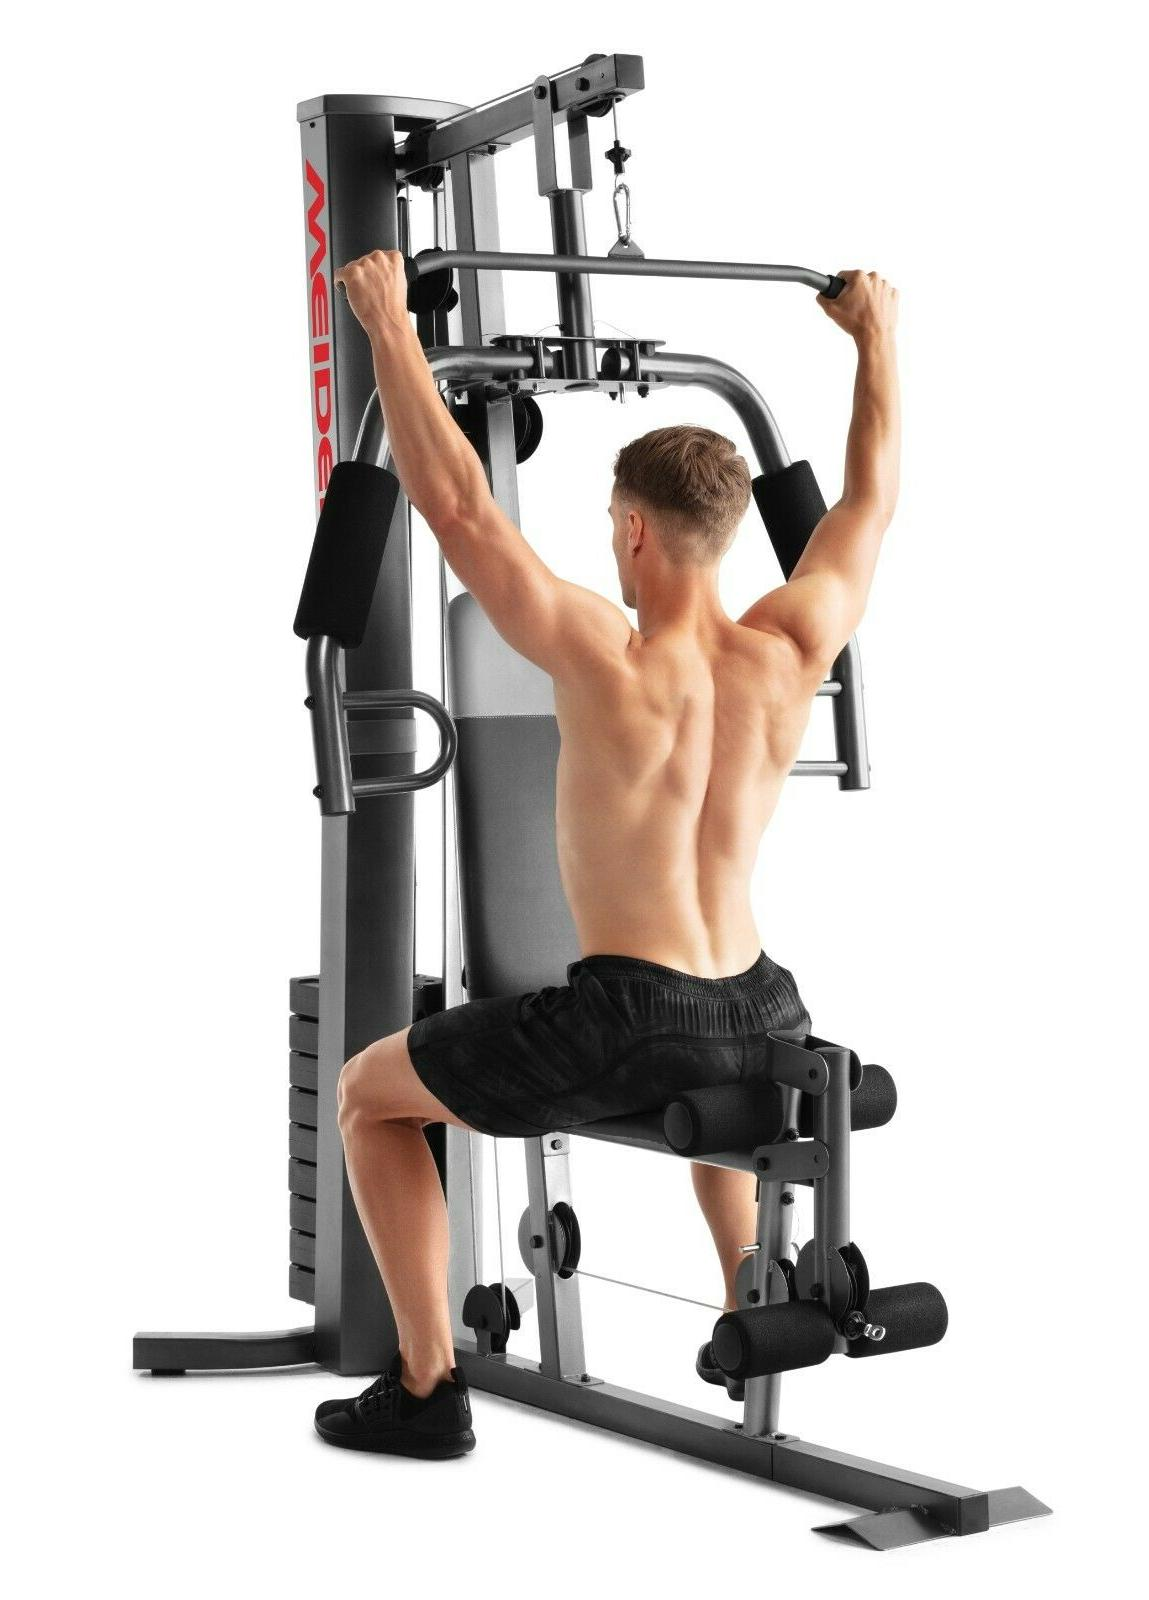 HOME GYM XR 50 Training Strength Exercise Sports